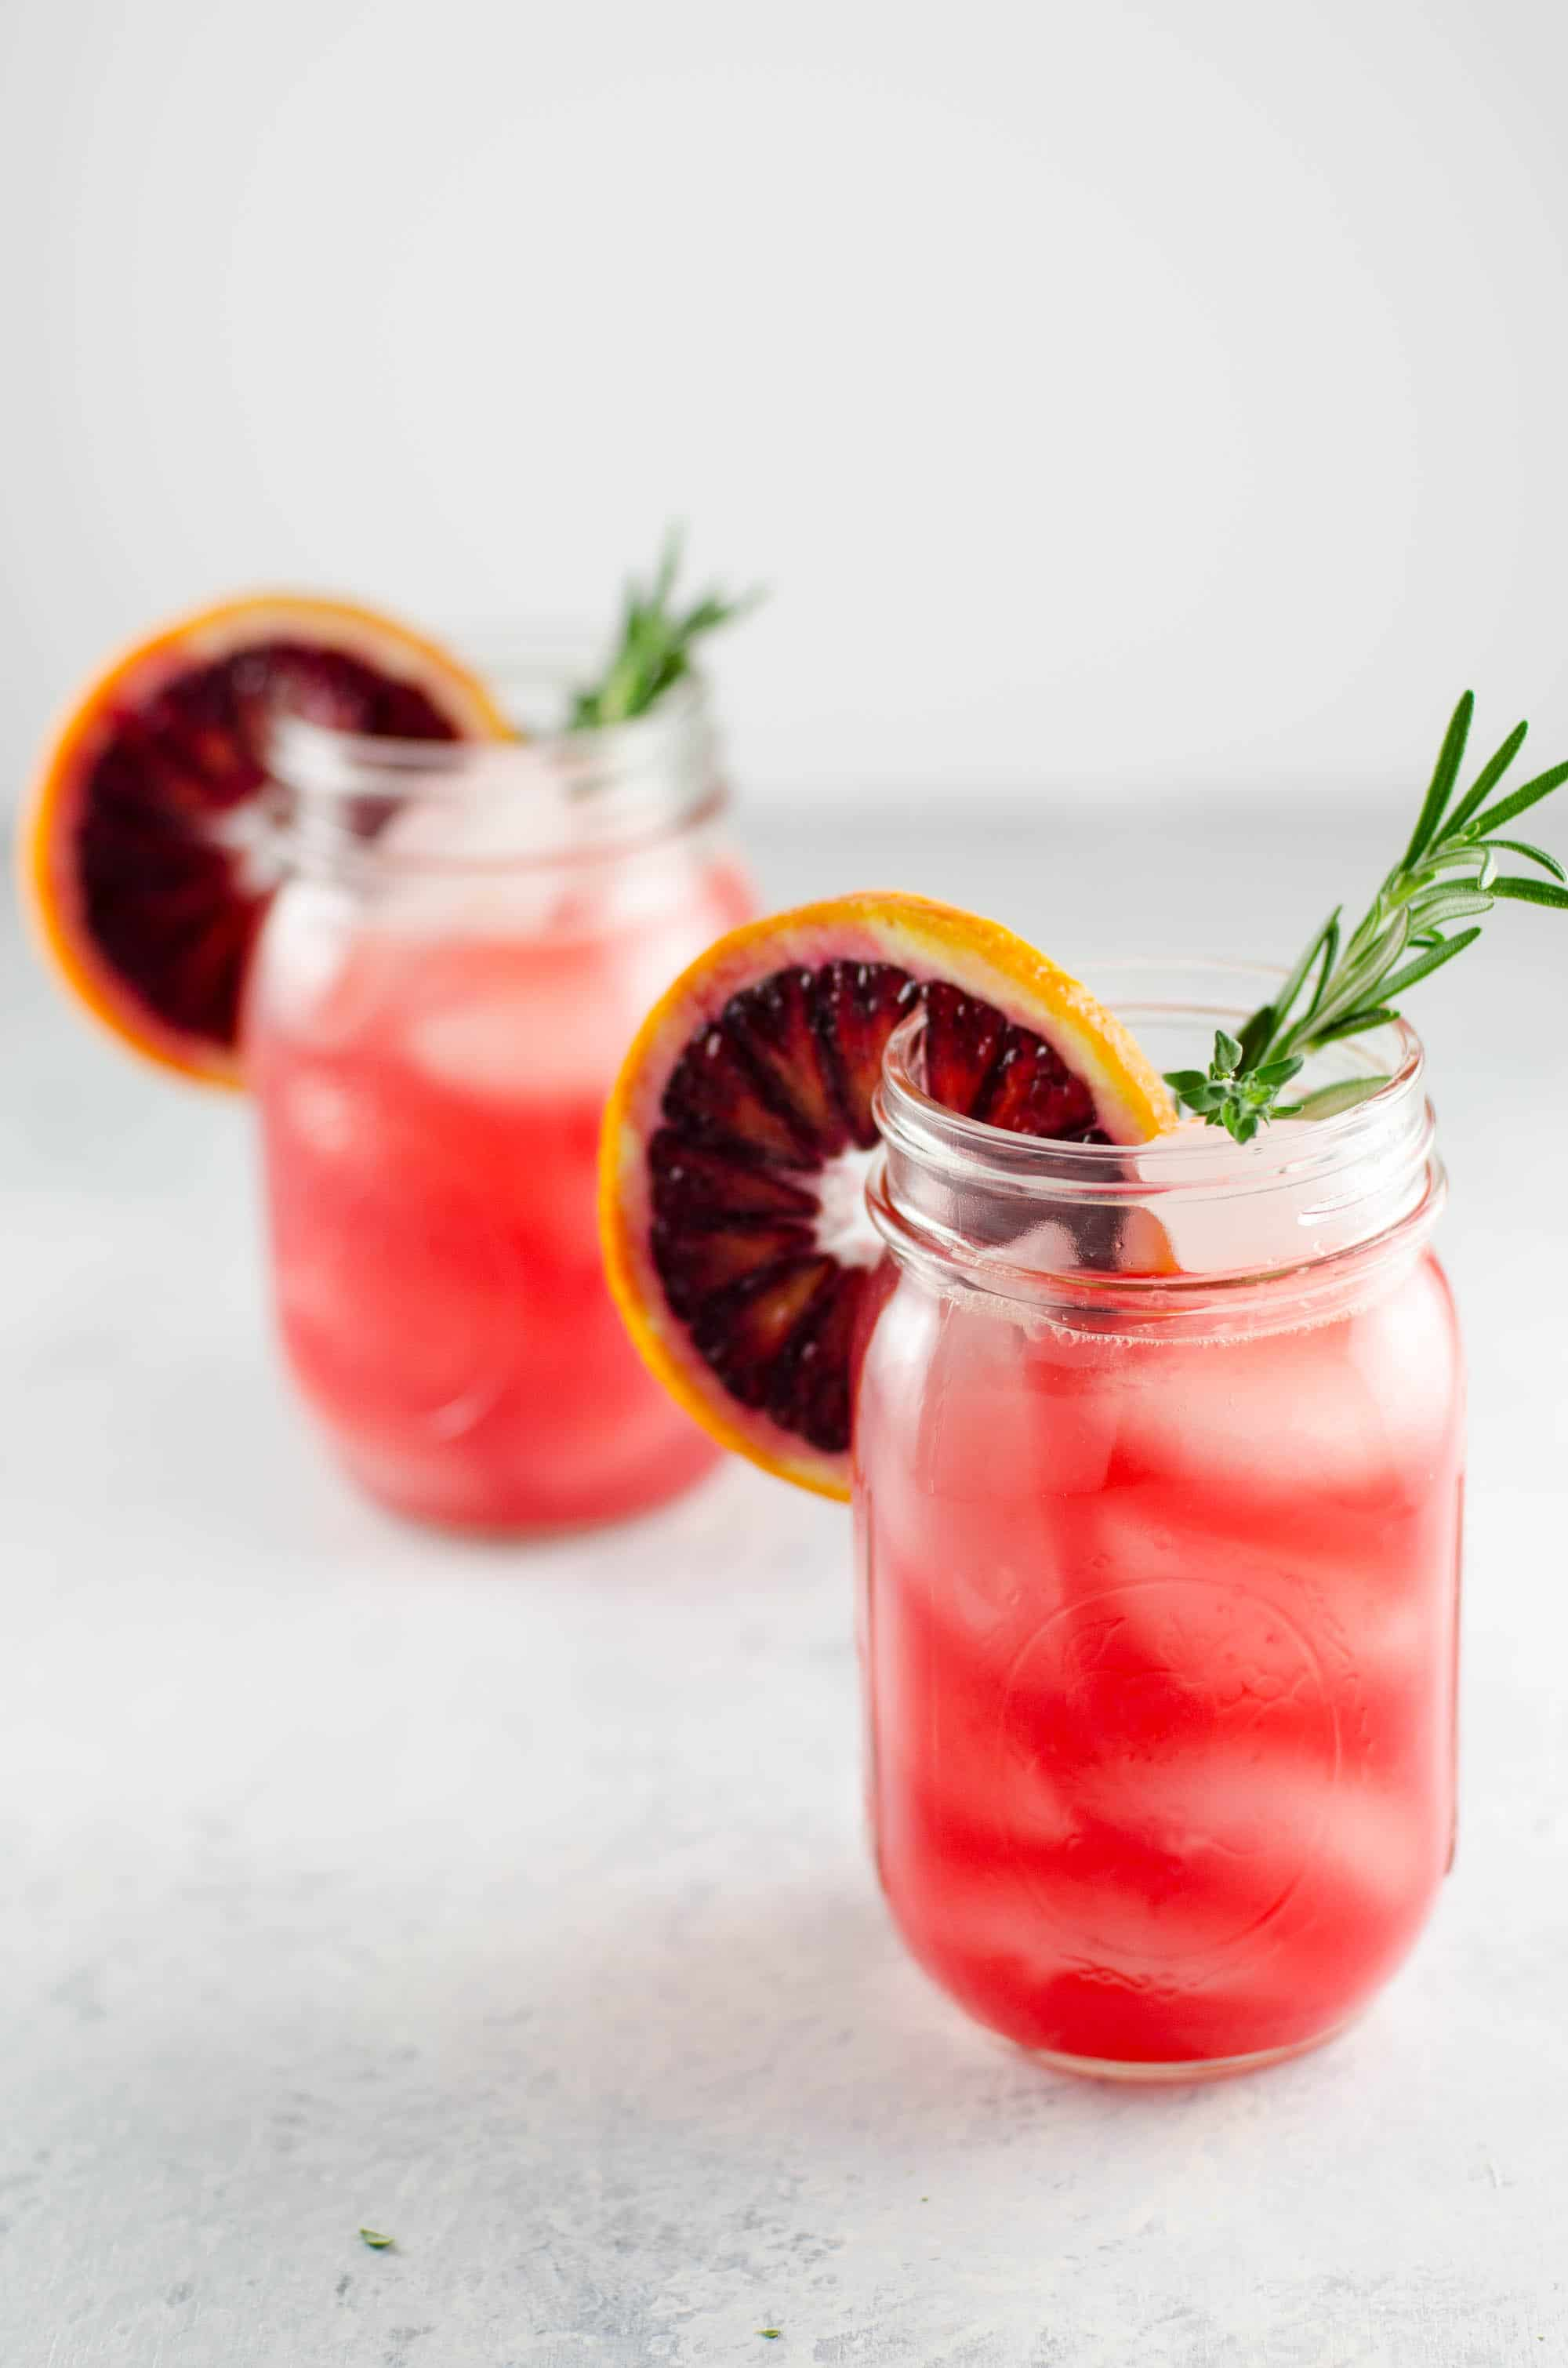 Blood Orange Grapefruit Cocktail with Winter Herbs | Umami Girl - A ...